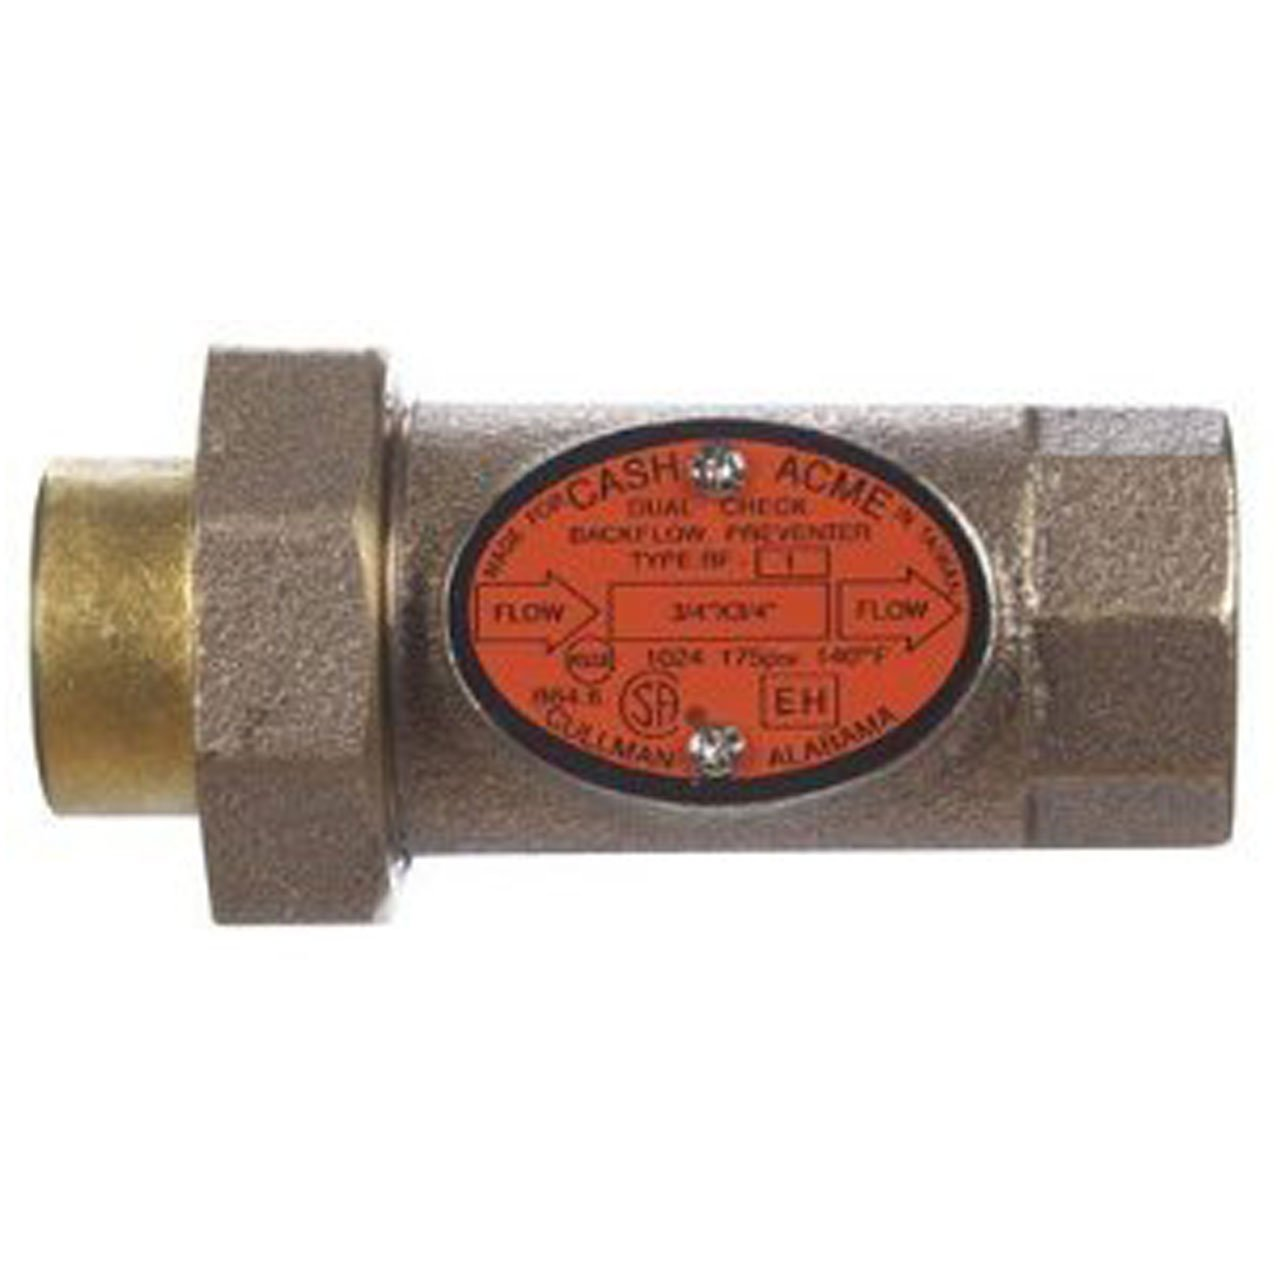 Cash Acme 17217-0000LF BF1 3/4-Inch Dual Check Backflow Preventer with Threaded Union Inlet, Lead Free